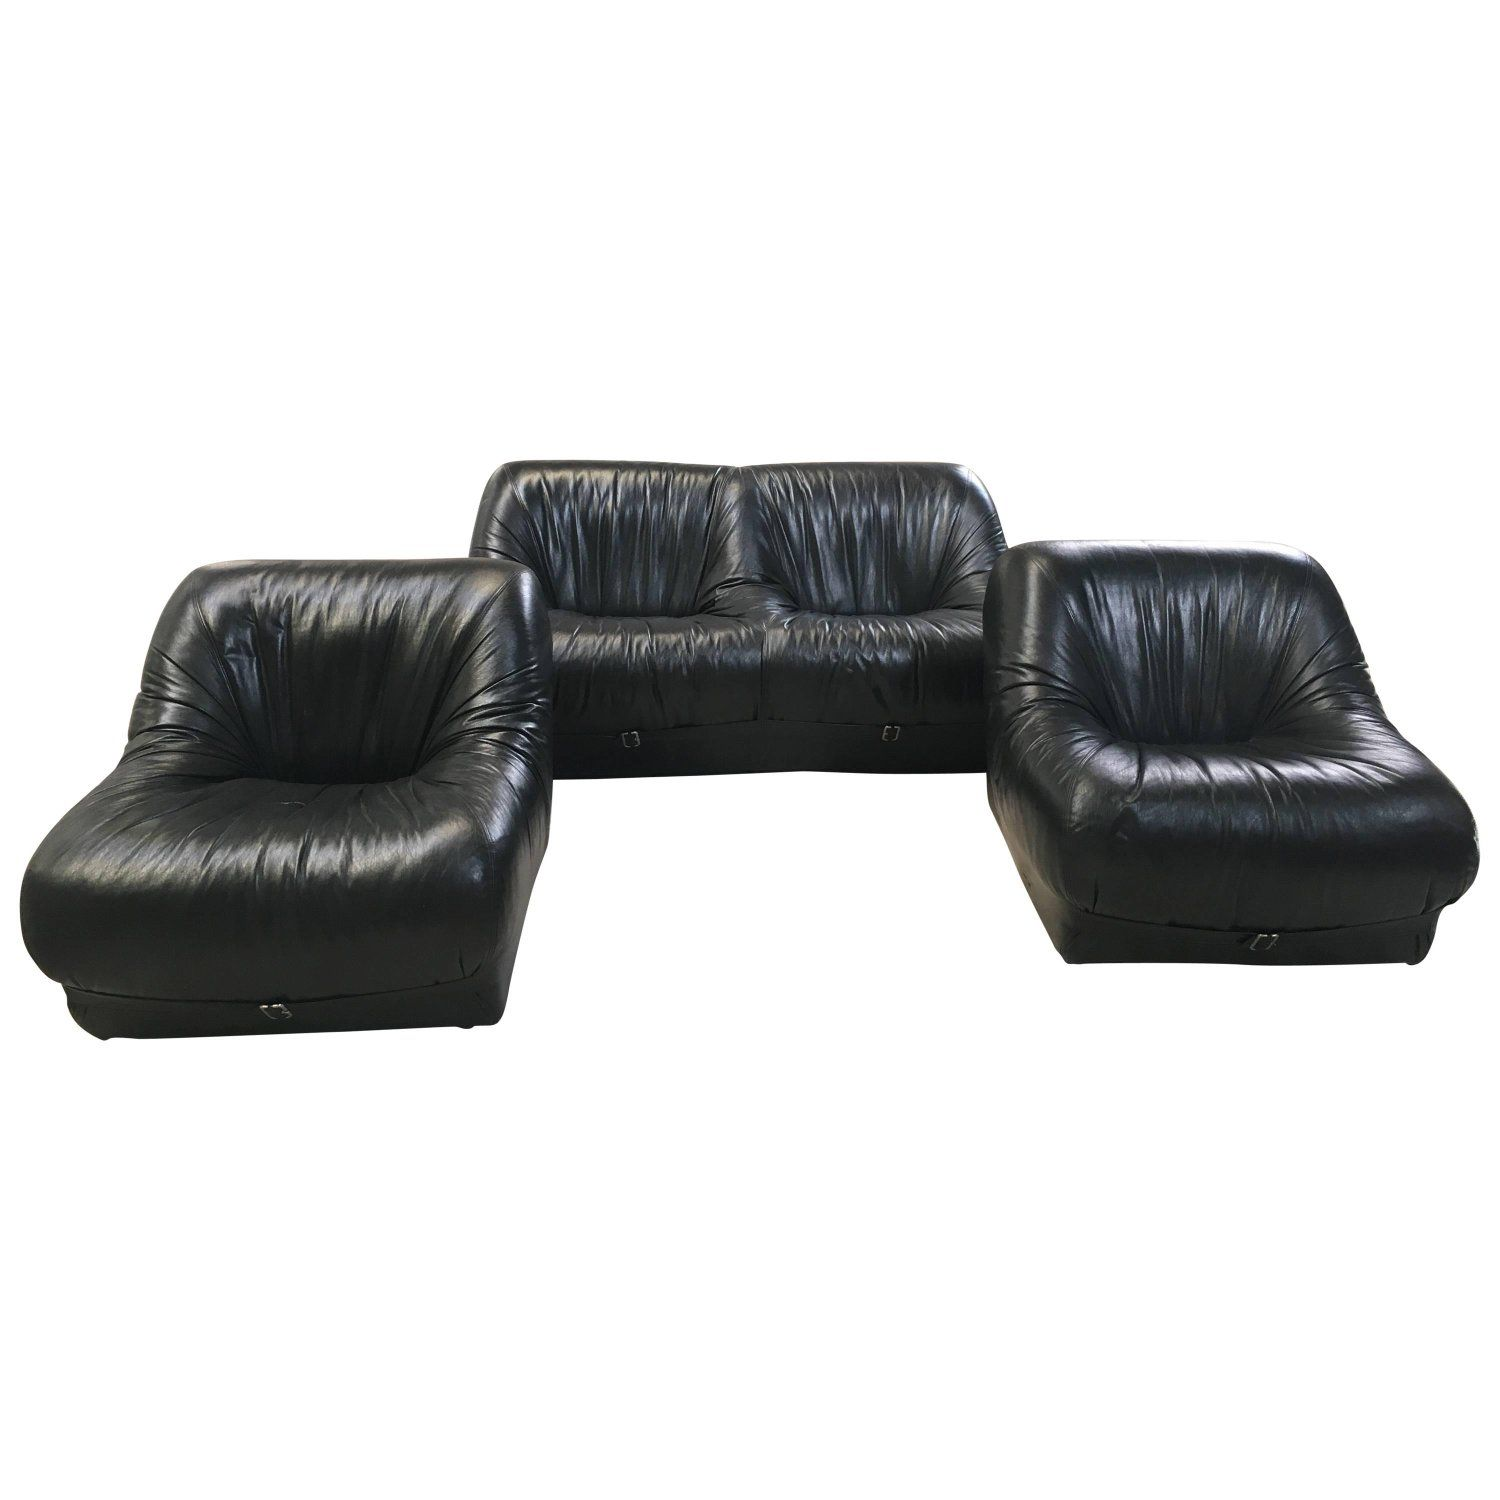 Italian Living Room Set with Leather Sofa and Armchairs from 1970s ...